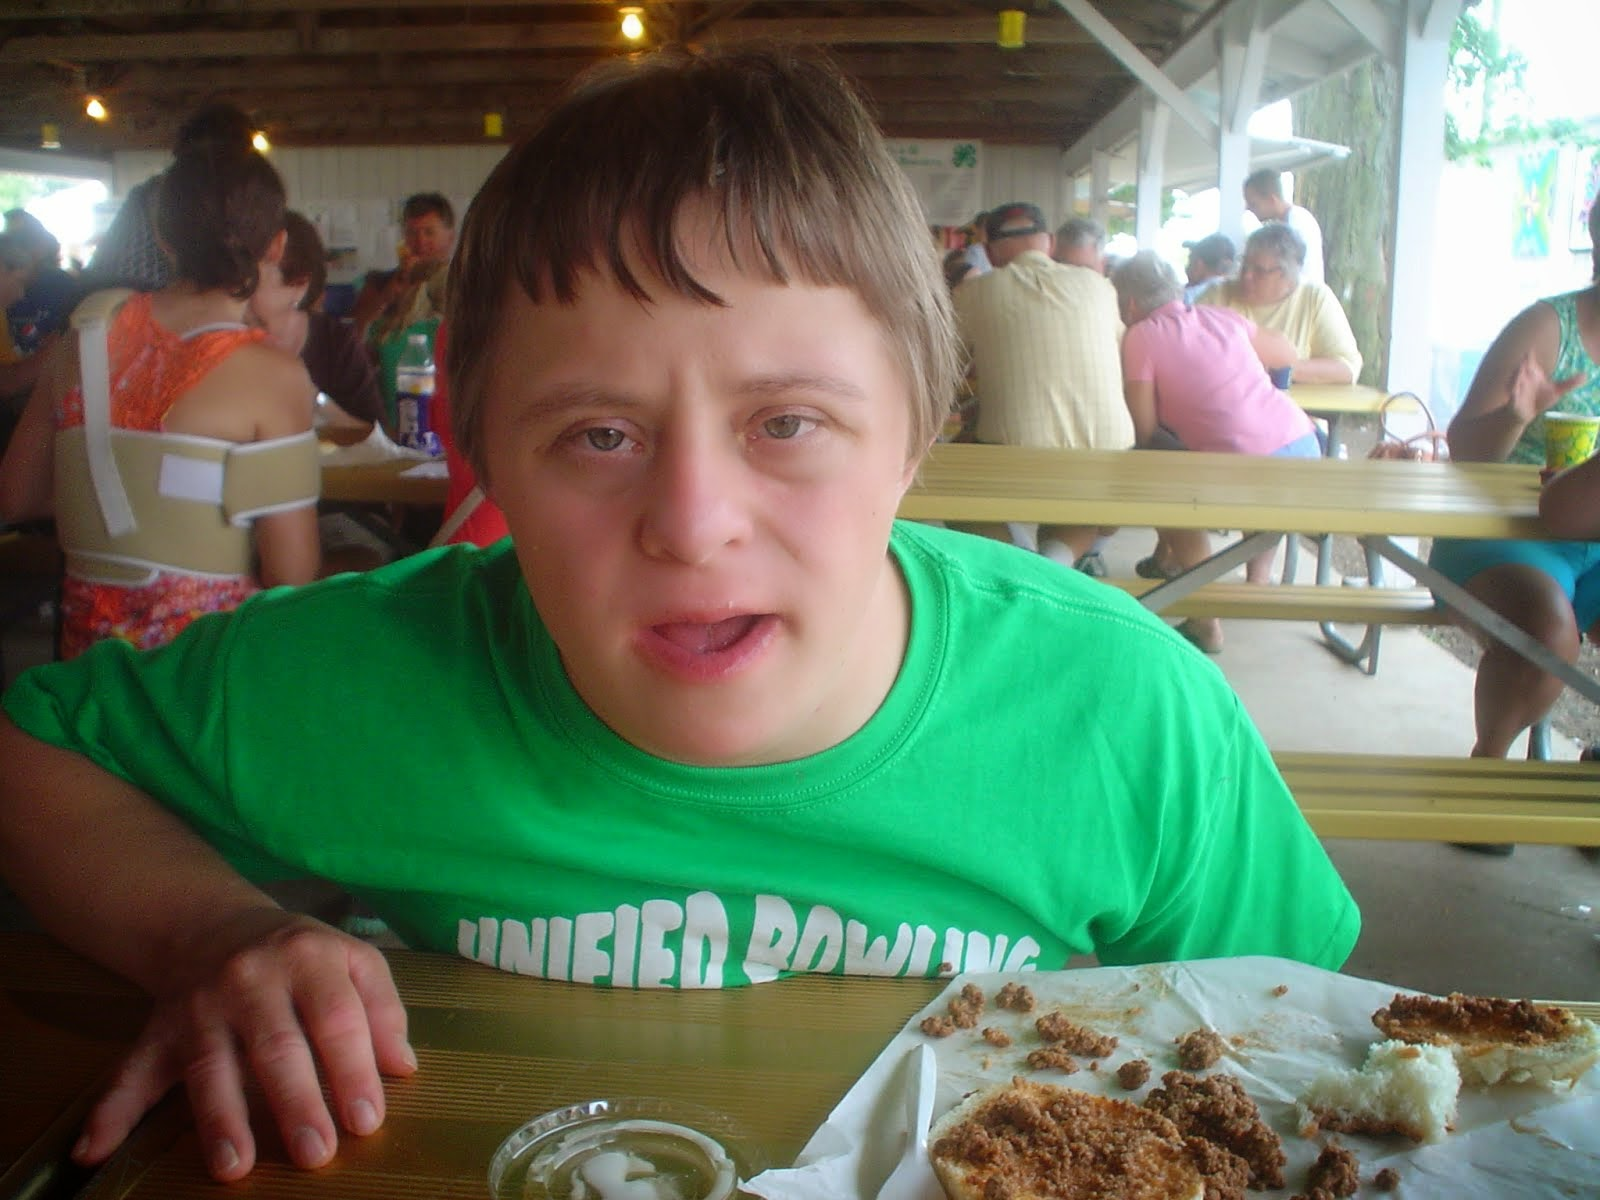 Alec eating at the Clinton County Fair